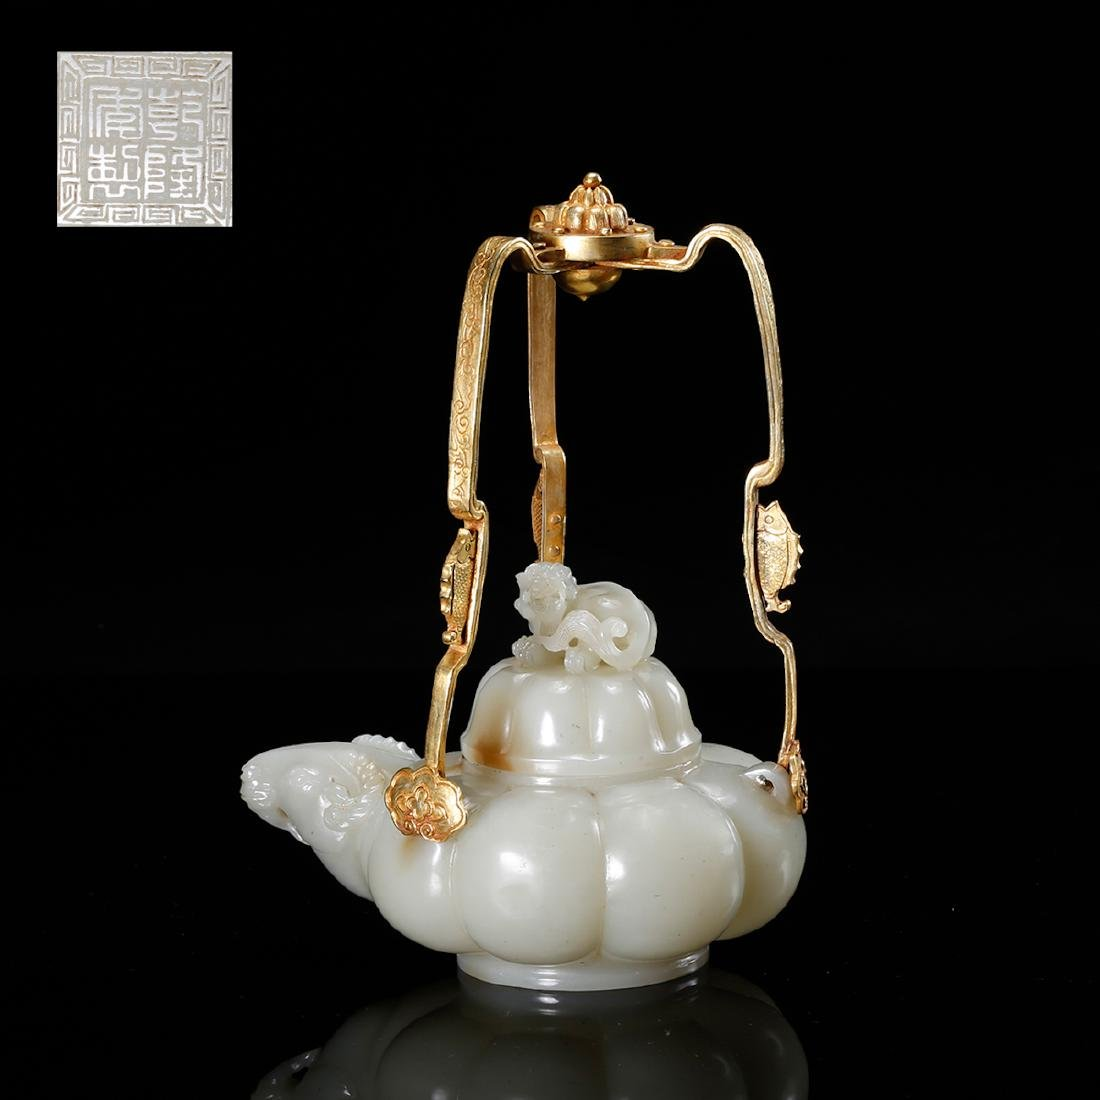 CHINESE WHITE JADE TEAPOT WITH MARK, QING